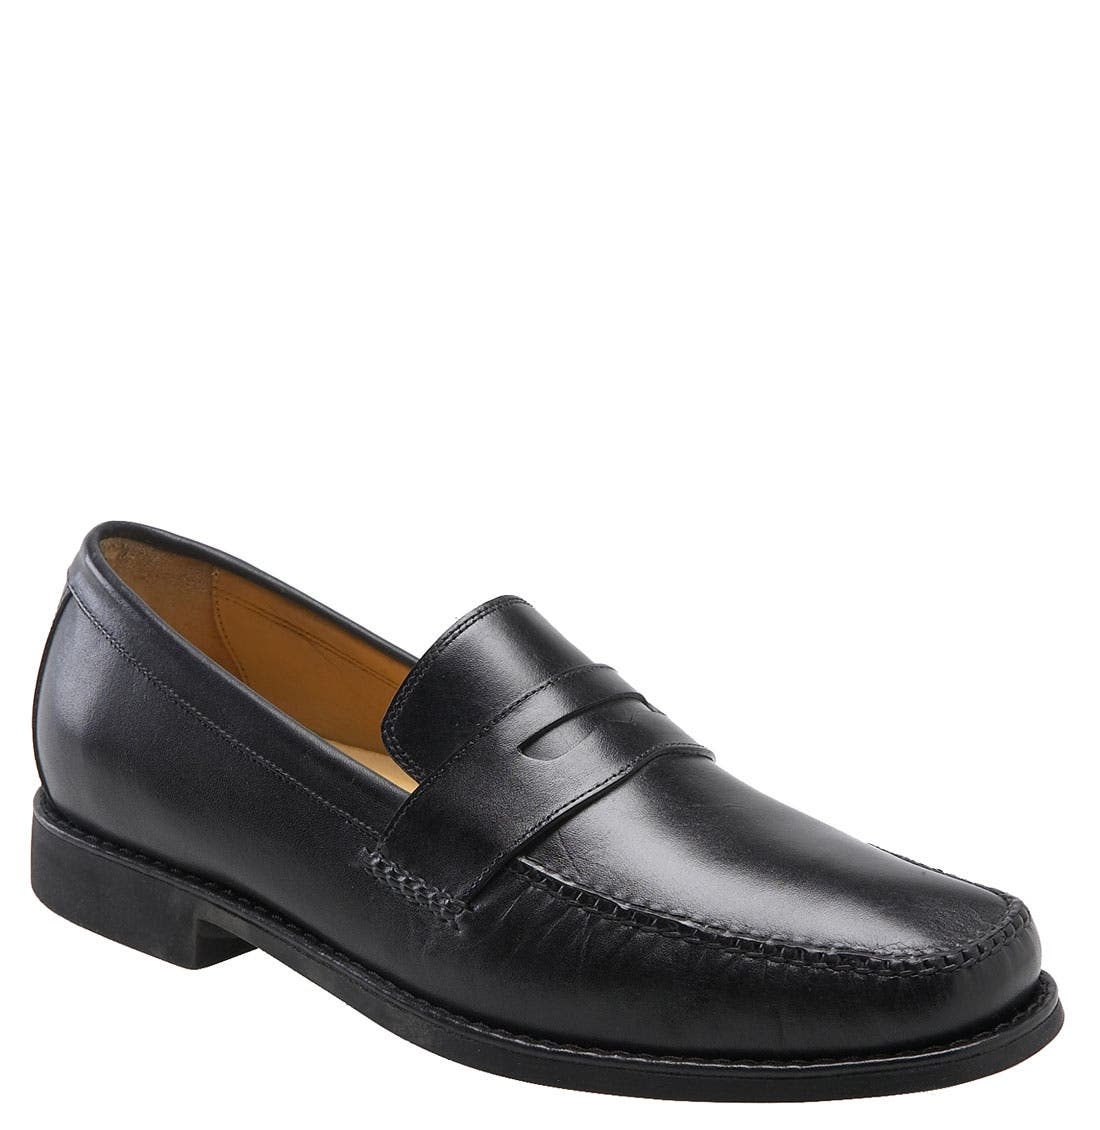 'Ainsworth' Penny Loafer